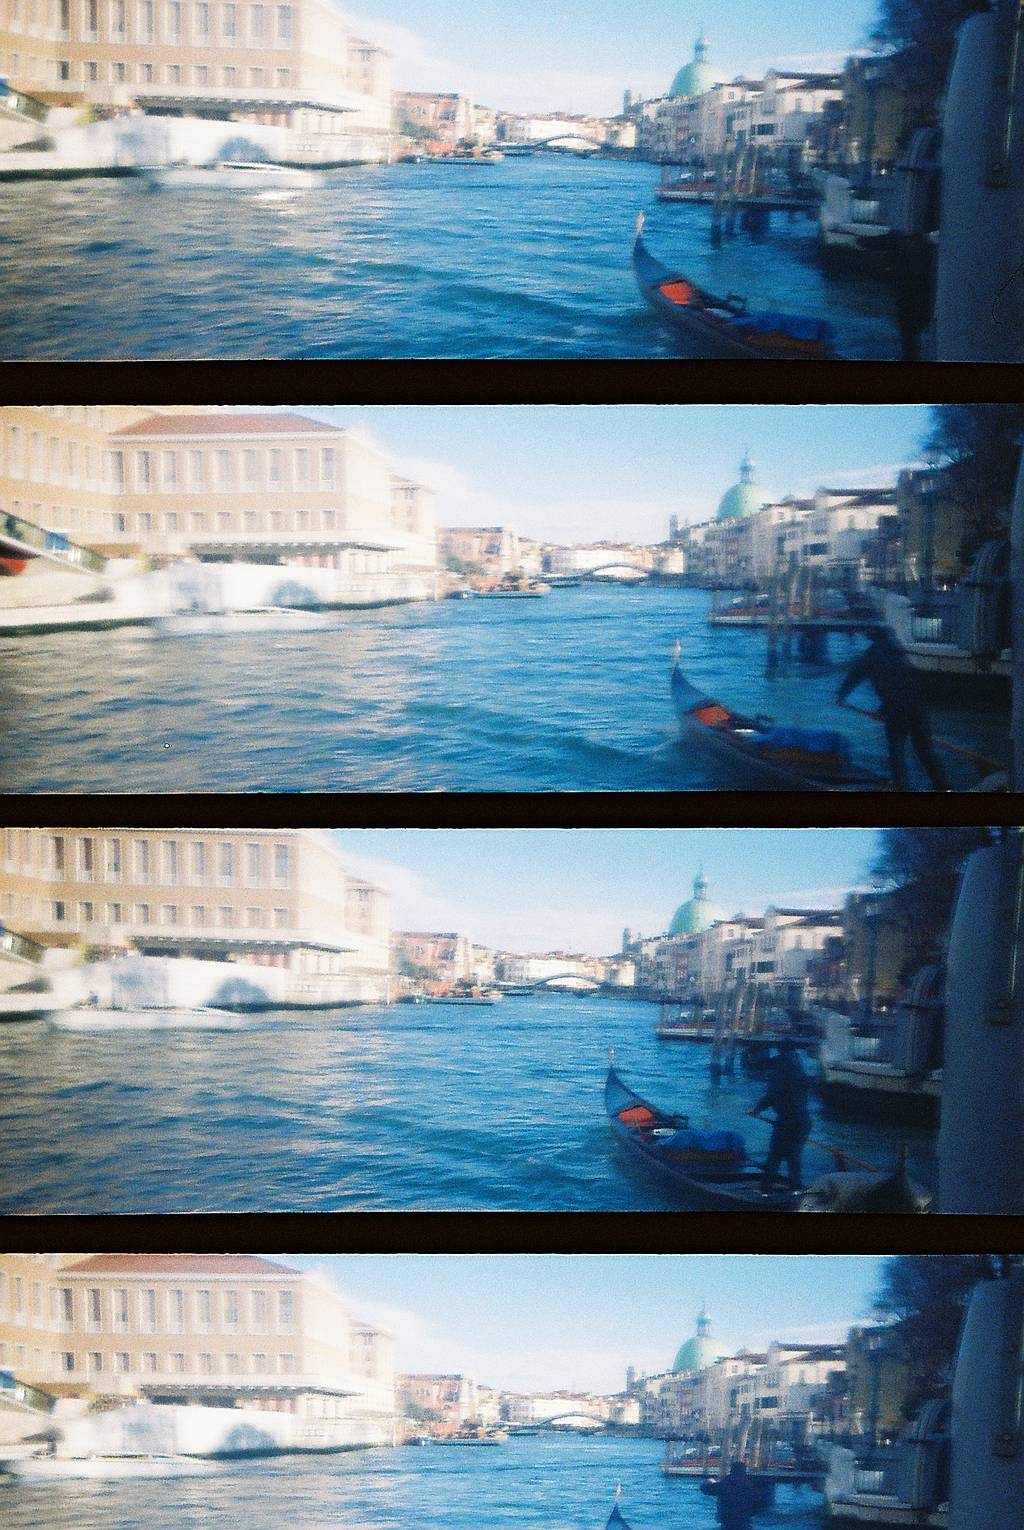 Cinema Paradiso: A Venetian Short Film Experience with LomoKino!